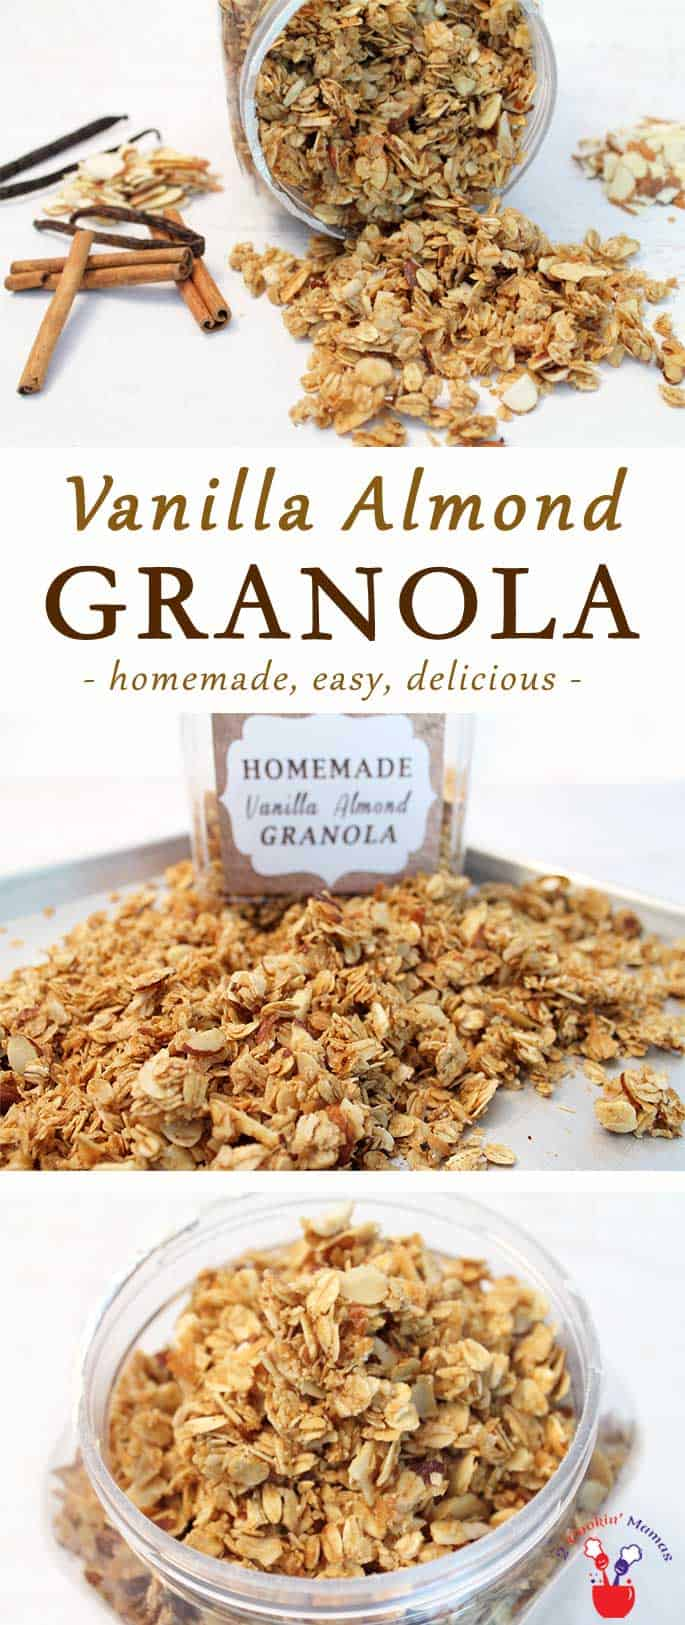 There's nothing better than homemade vanilla almond granola. It's healthier than store bought, easy to make & great as a snack or yogurt topping. #granola #almonds #snack #breakfast